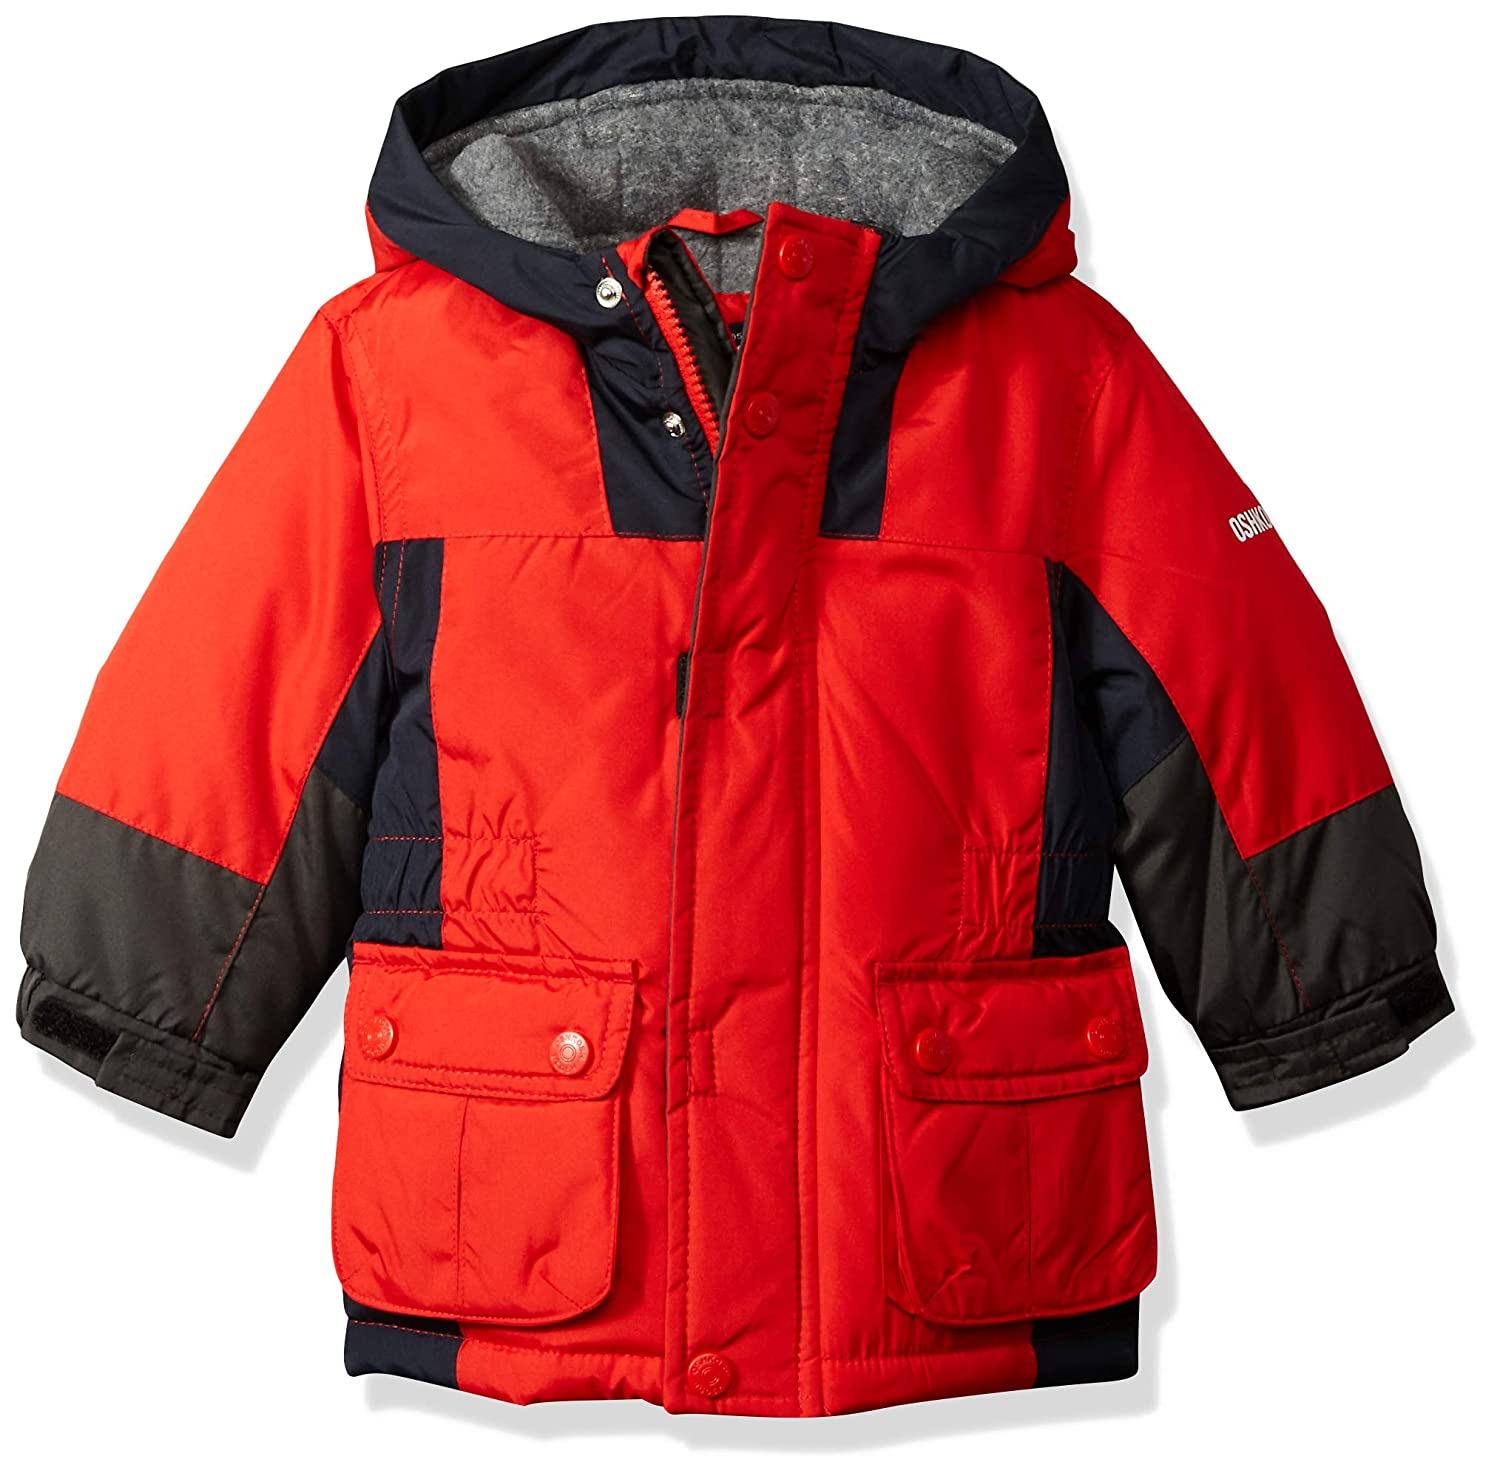 OshKosh B'Gosh Baby Boys Classic Heavyweight Active Parka Osh Kosh